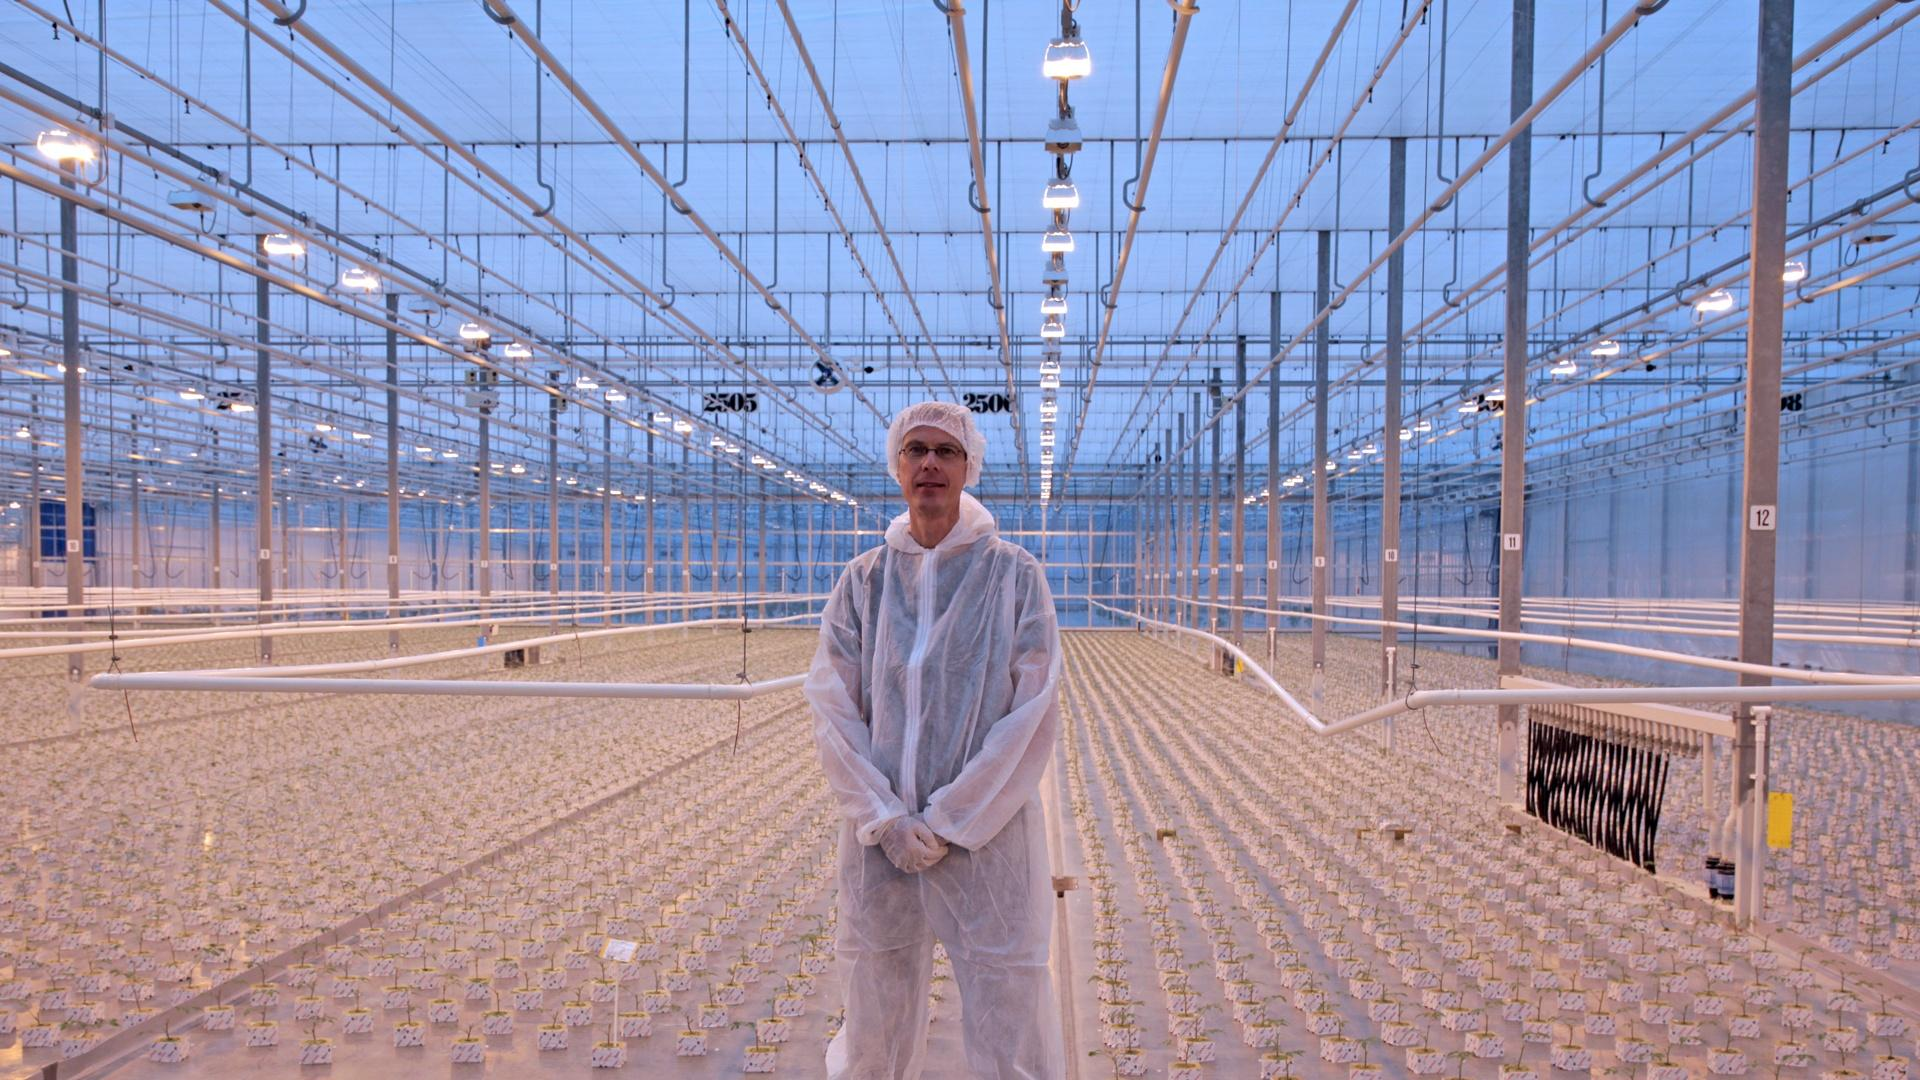 In Rotterdam, Holland, Water Management Scientist, Arjen Hoekstra, stands in a climate controlled greenhouse filled with thousands of tomato seedlings.